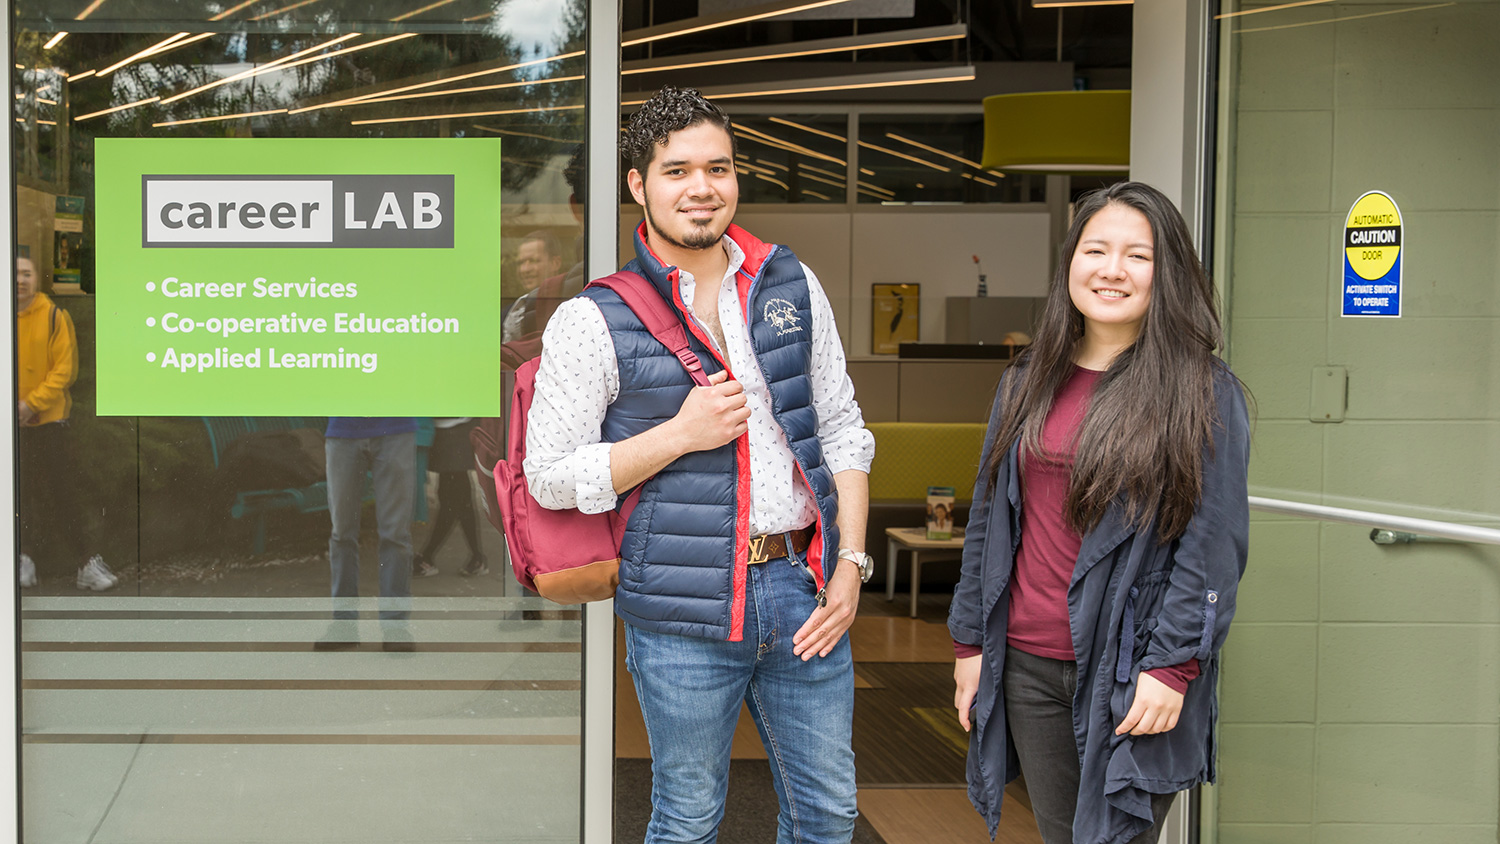 Students standing out in front of the career lab co-op center